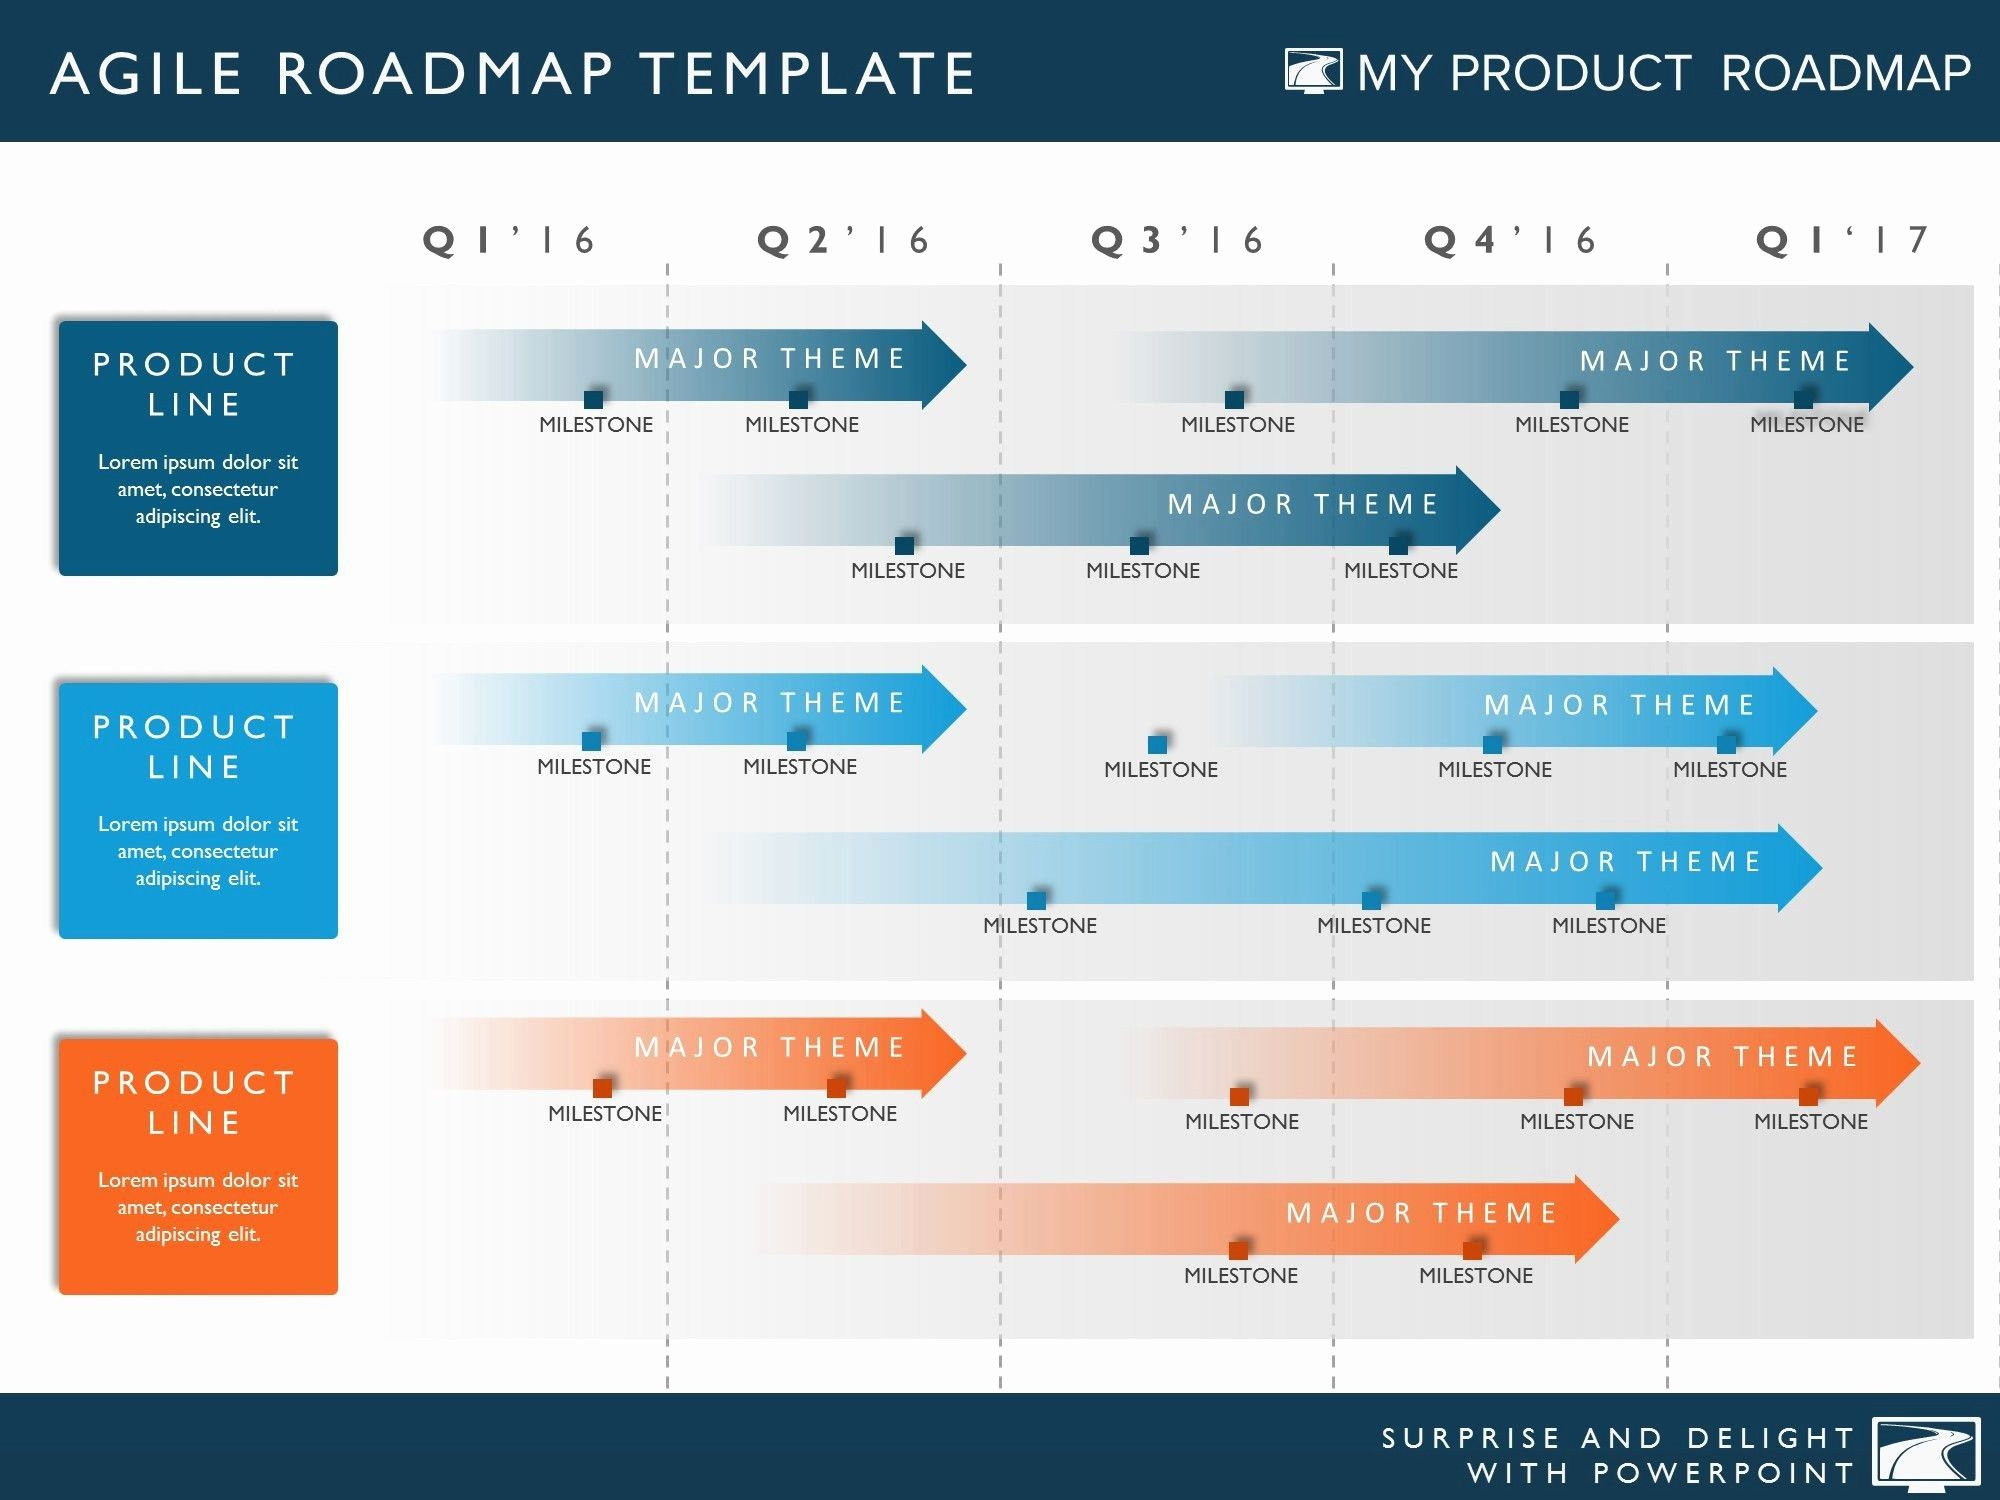 Free Moving Powerpoint Templates Best Roadmap Template Ppt Free Project Timeline Template Roadmap Technology Roadmap